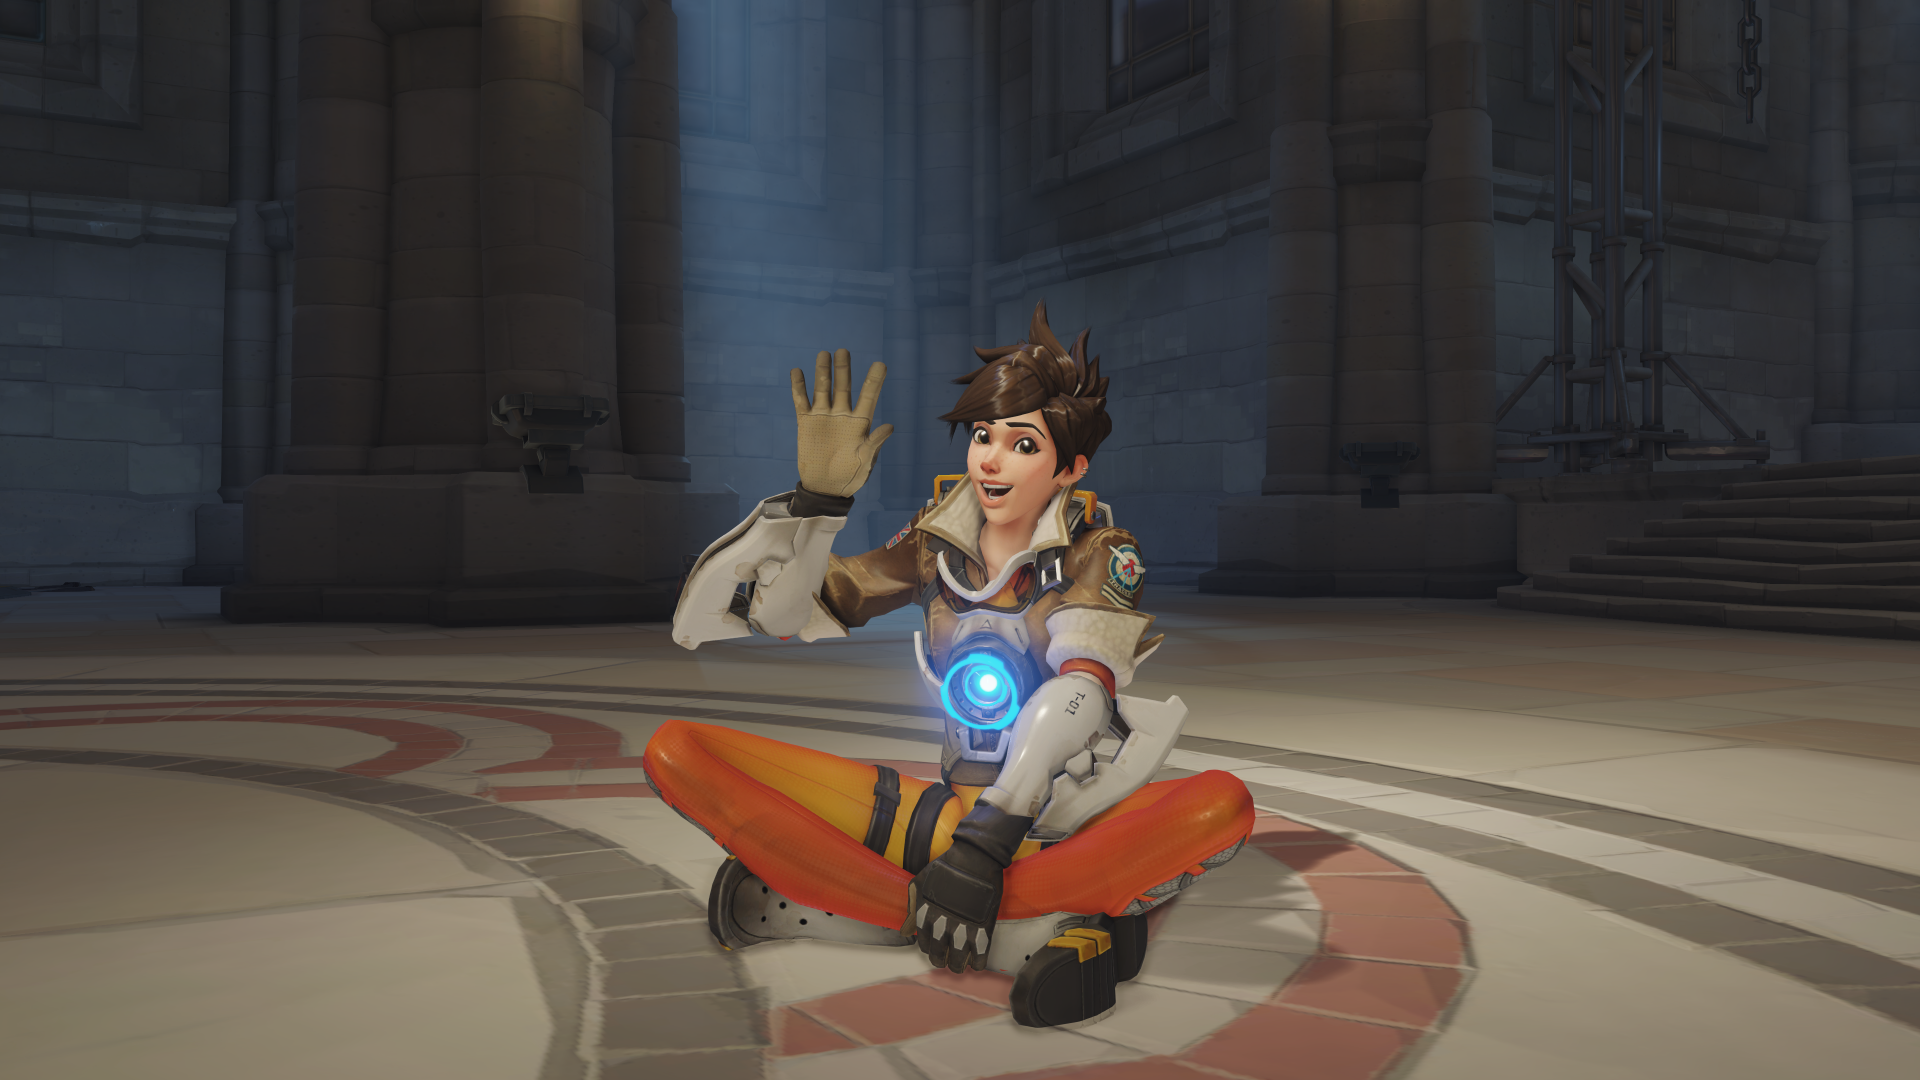 Image mei portrait png overwatch wiki fandom powered by wikia - Tracer Sitting Png